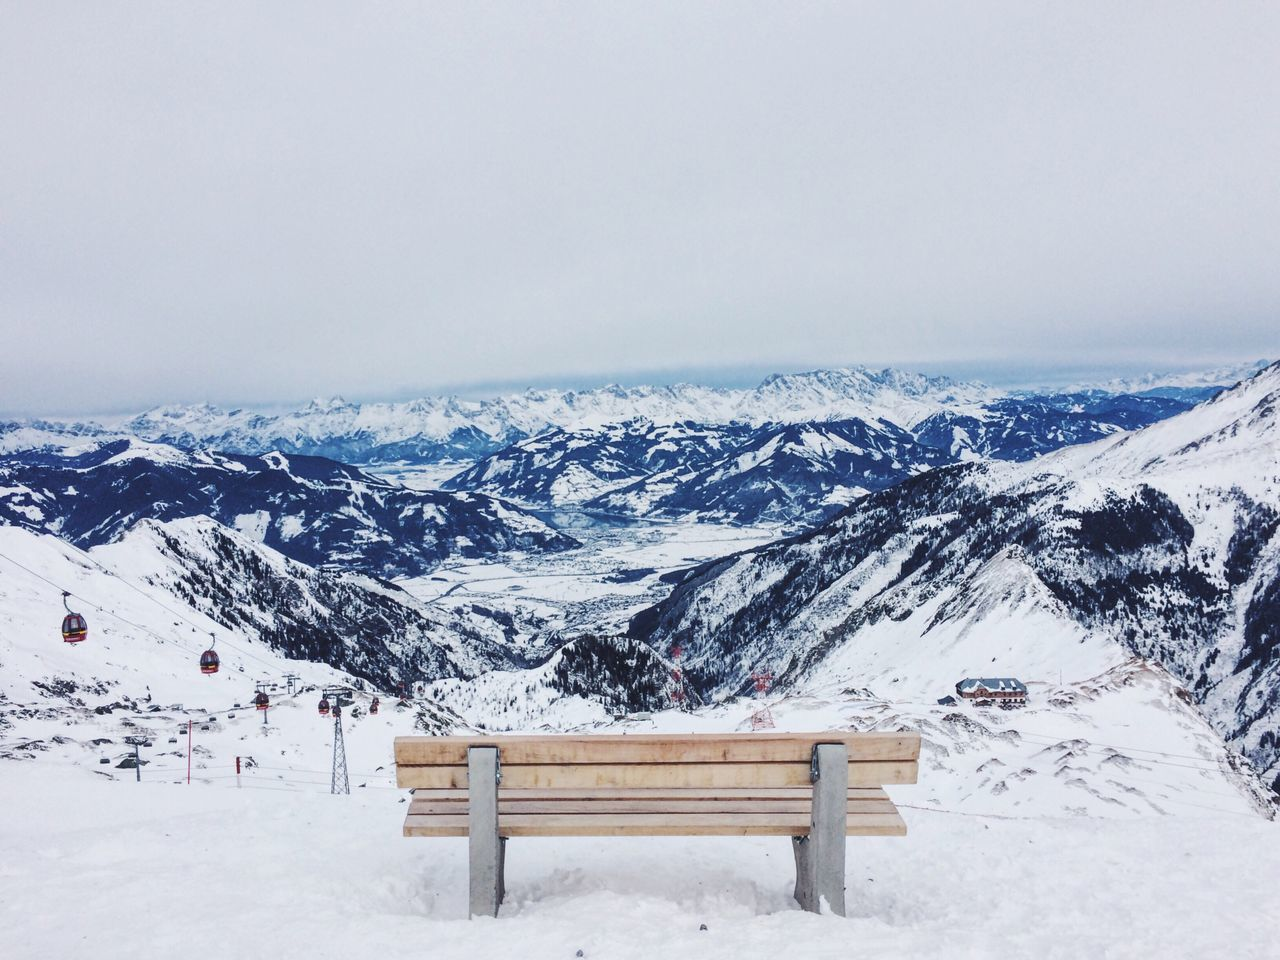 Bench View From Above View From The Top Mountains Mountaintop Alps EyeEm Nature Lover EyeEm Best Shots EyeEm Gallery Snow Cold Days Original Experiences Austria End Of The World Topview 3000m 3000 Metres Winter Wintertime Alpen Loneliness Lonelyplanet High Top View Mountain Hiking